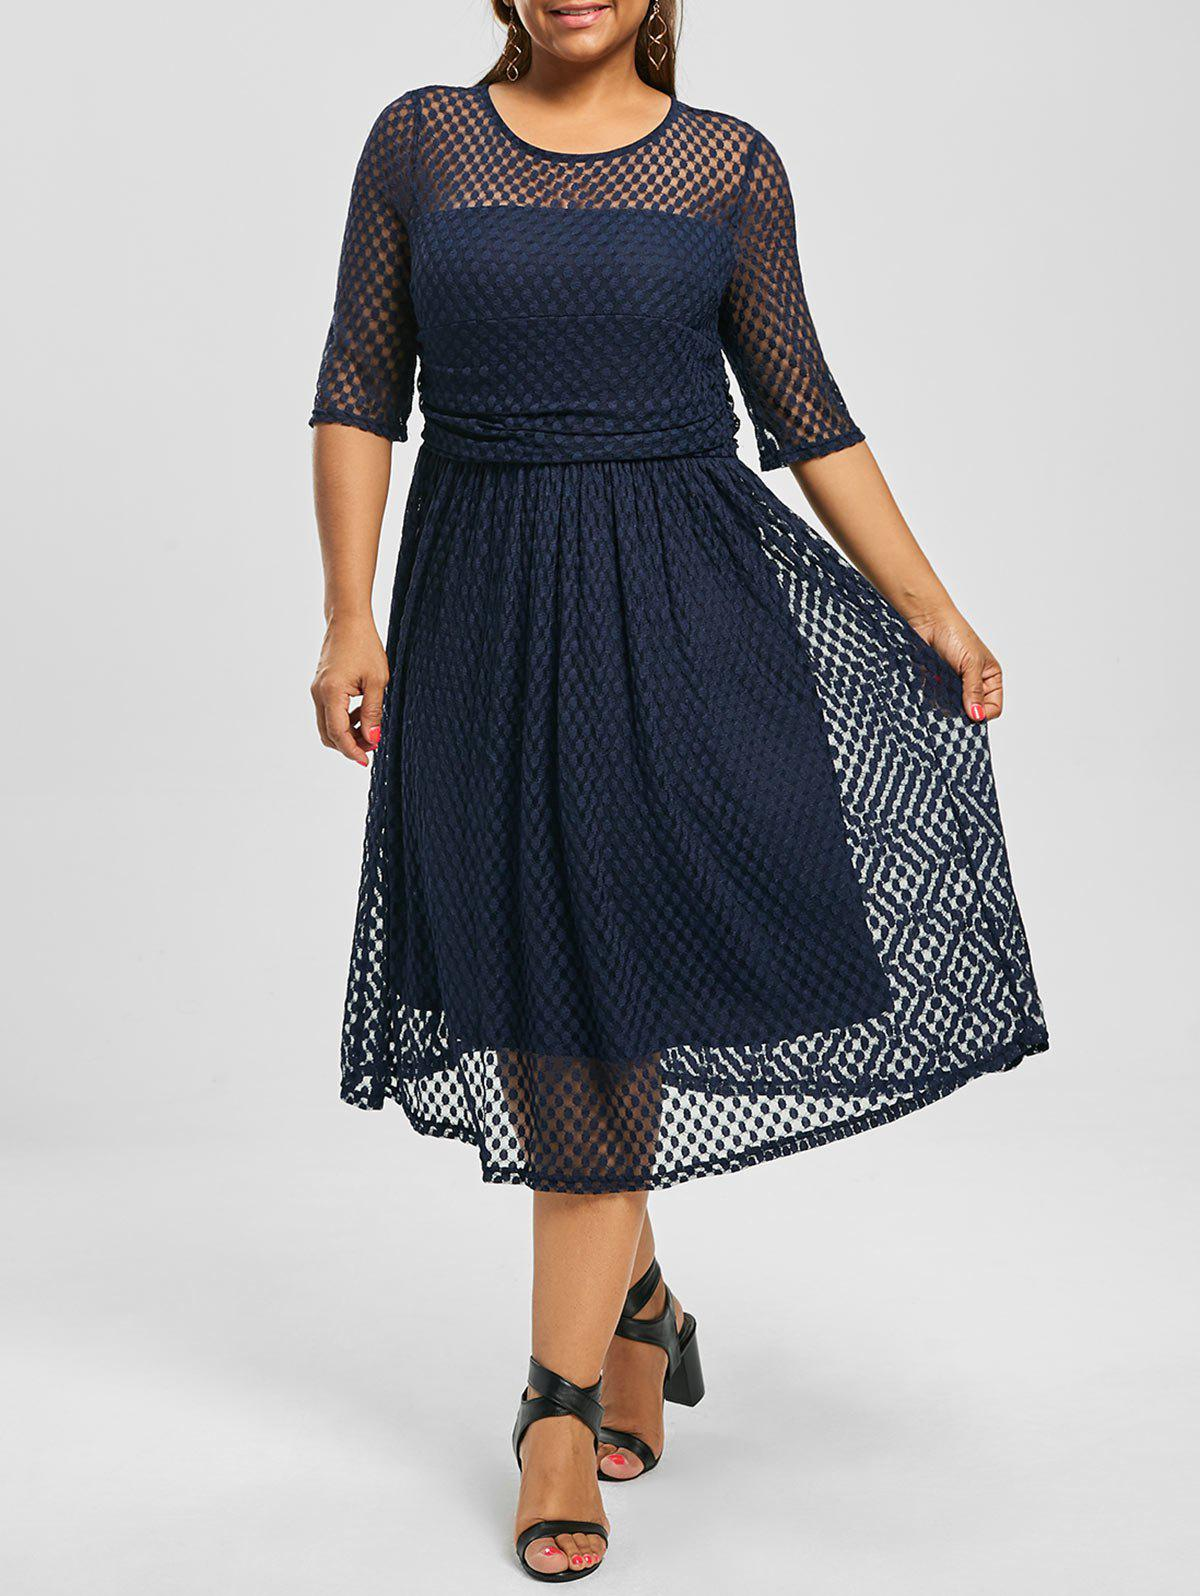 Plus Size Lace A Line Midi Homecoming DressWOMEN<br><br>Size: 4XL; Color: PURPLISH BLUE; Style: Brief; Material: Polyester; Silhouette: A-Line; Dresses Length: Mid-Calf; Neckline: Round Collar; Sleeve Length: Half Sleeves; Pattern Type: Solid Color; With Belt: No; Season: Summer; Weight: 0.4000kg; Package Contents: 1 x Dress;